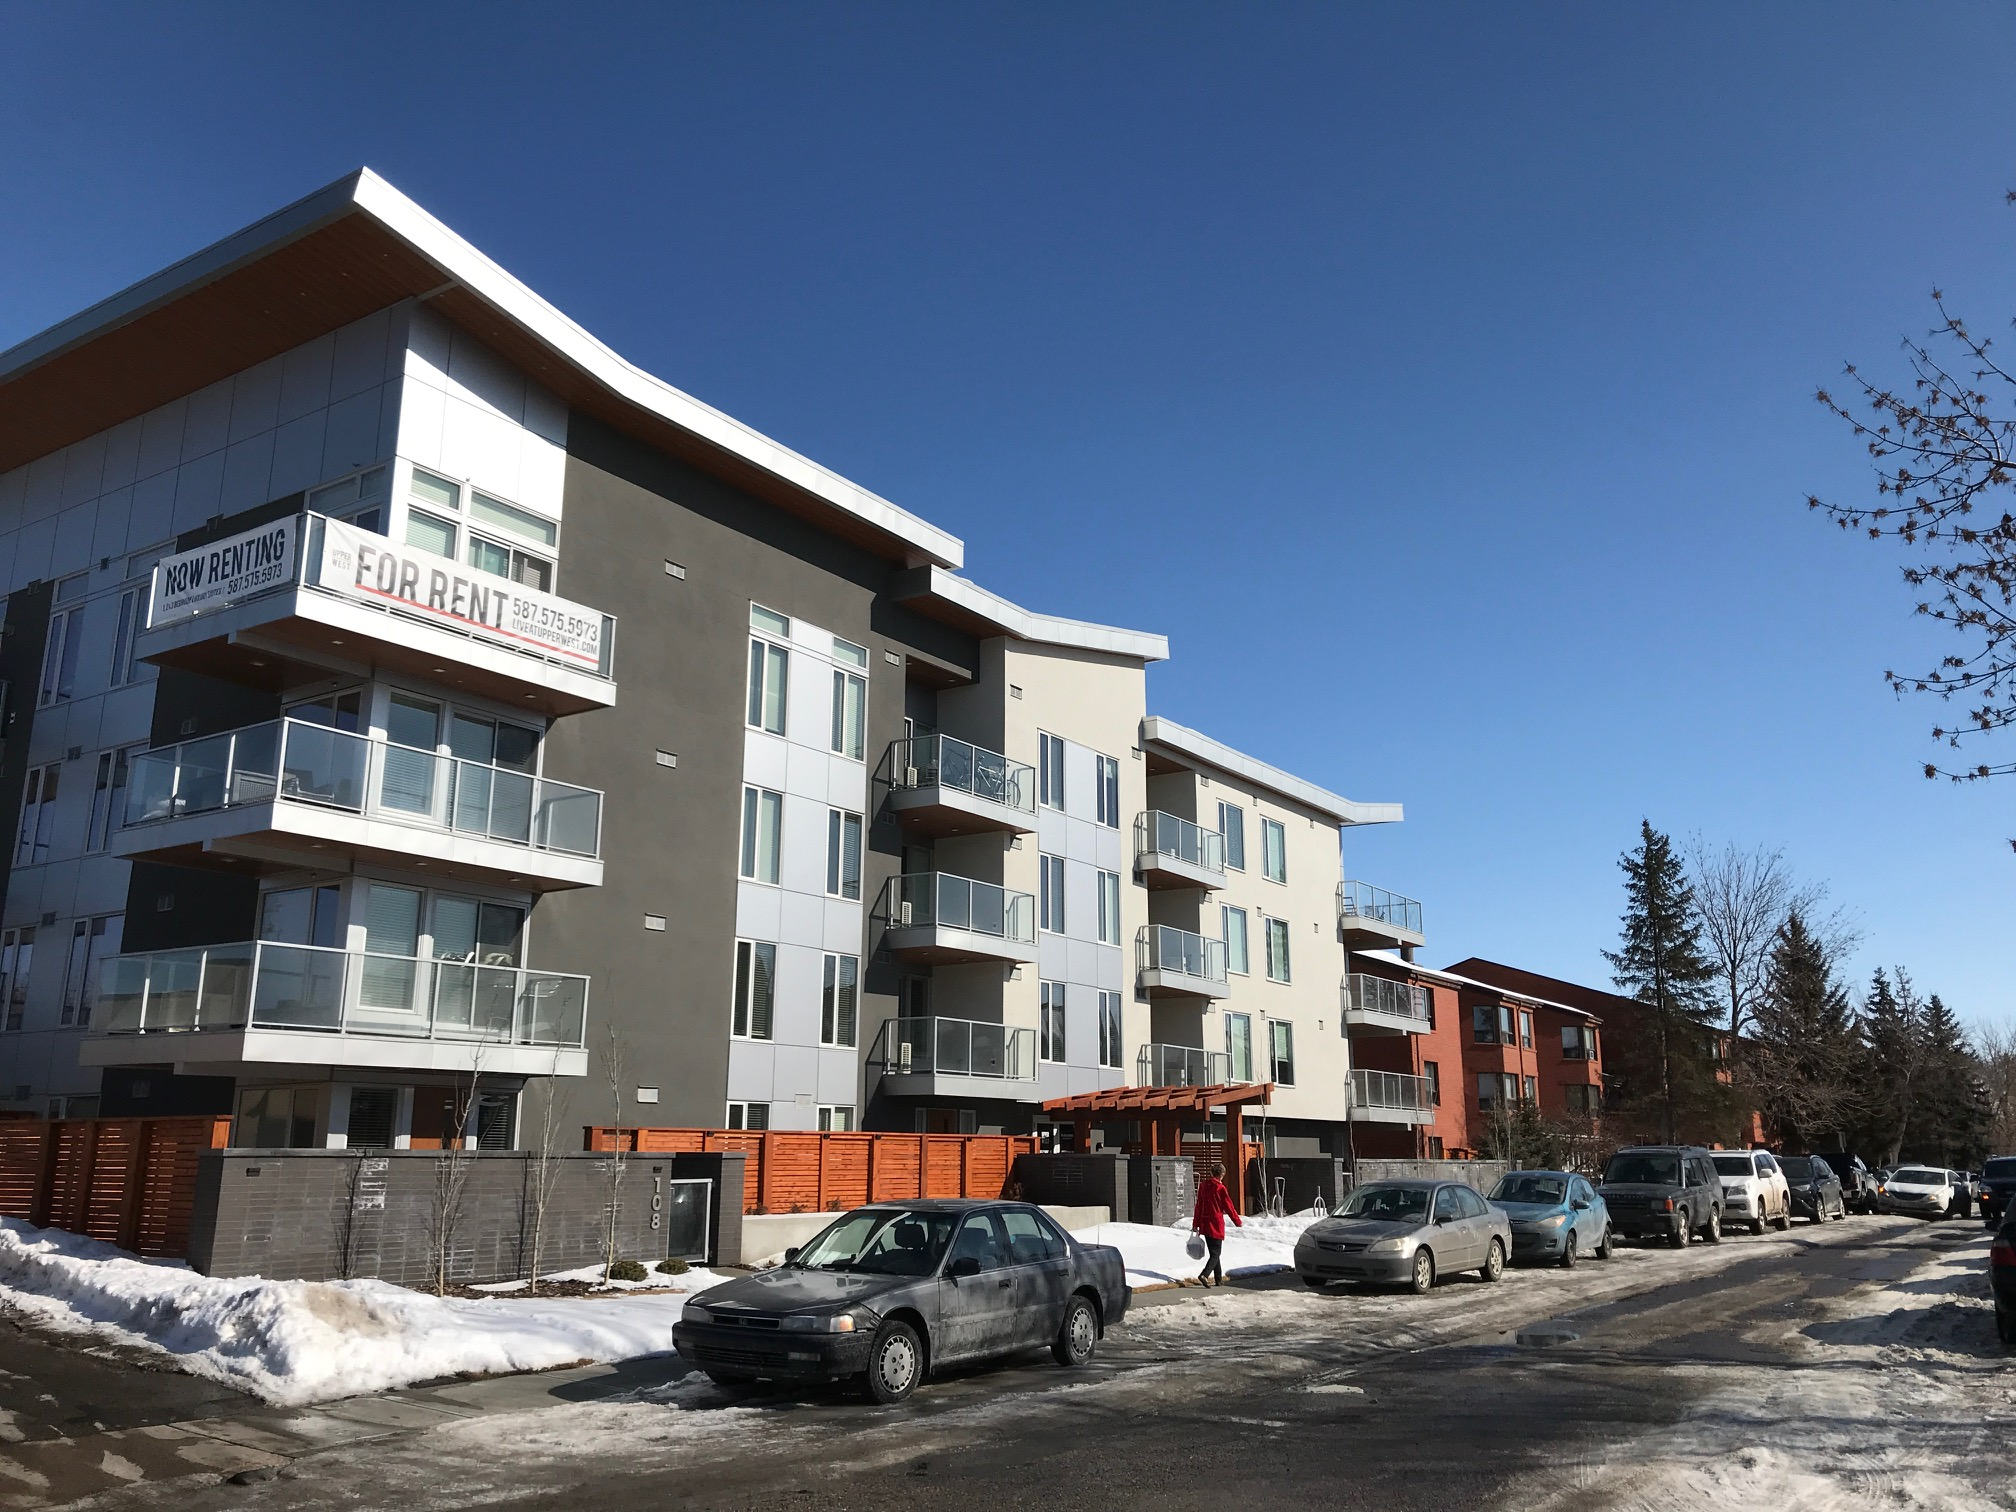 Here is what the new condo with 45 new homes looks like today.